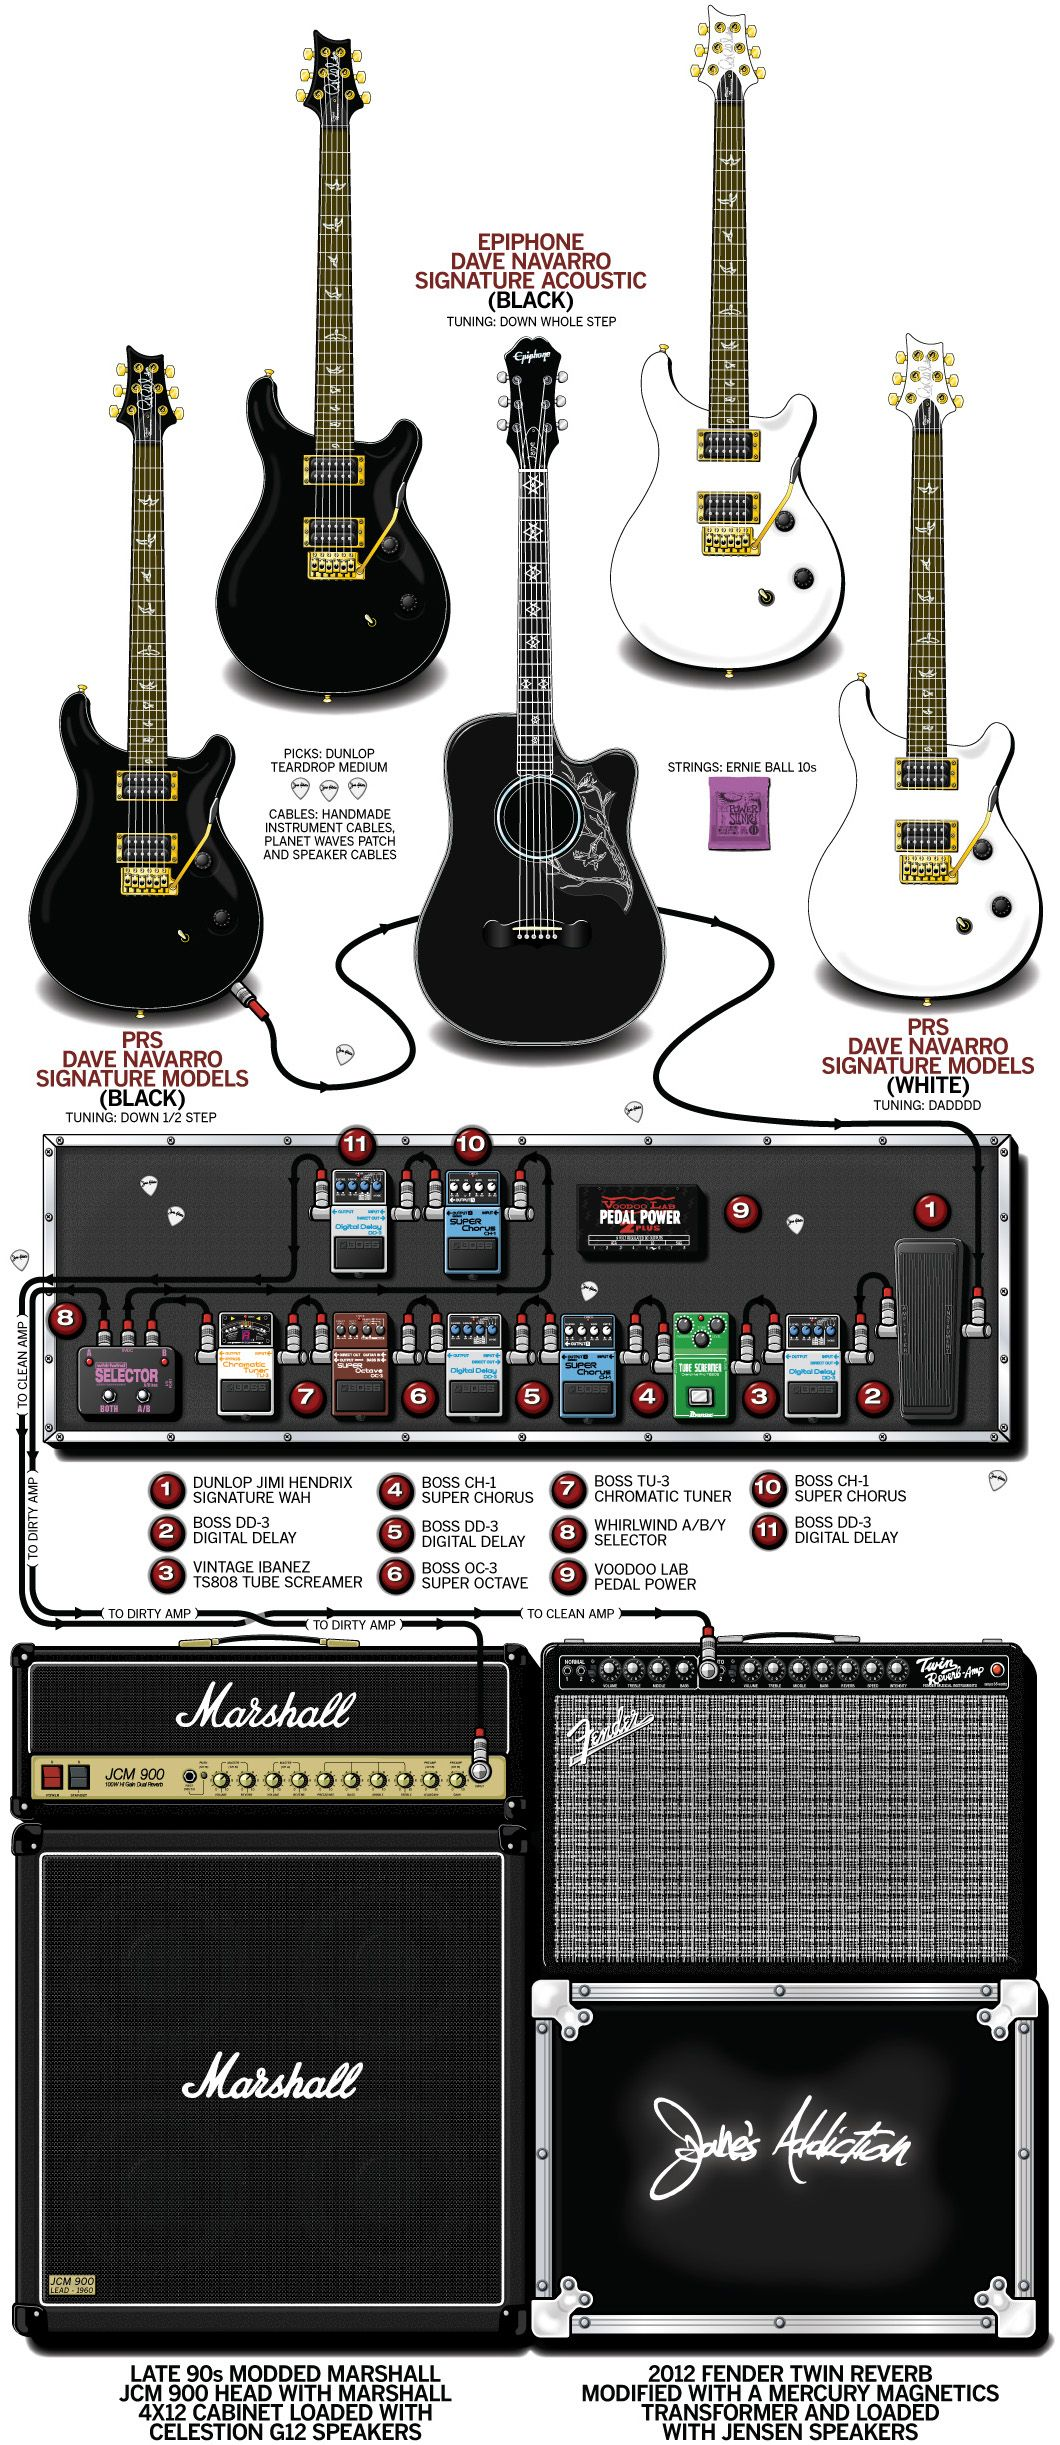 Guitar Rig Diagram Photosynthesis To Label A Detailed Gear Of Dave Navarro 39s Jane Addiction